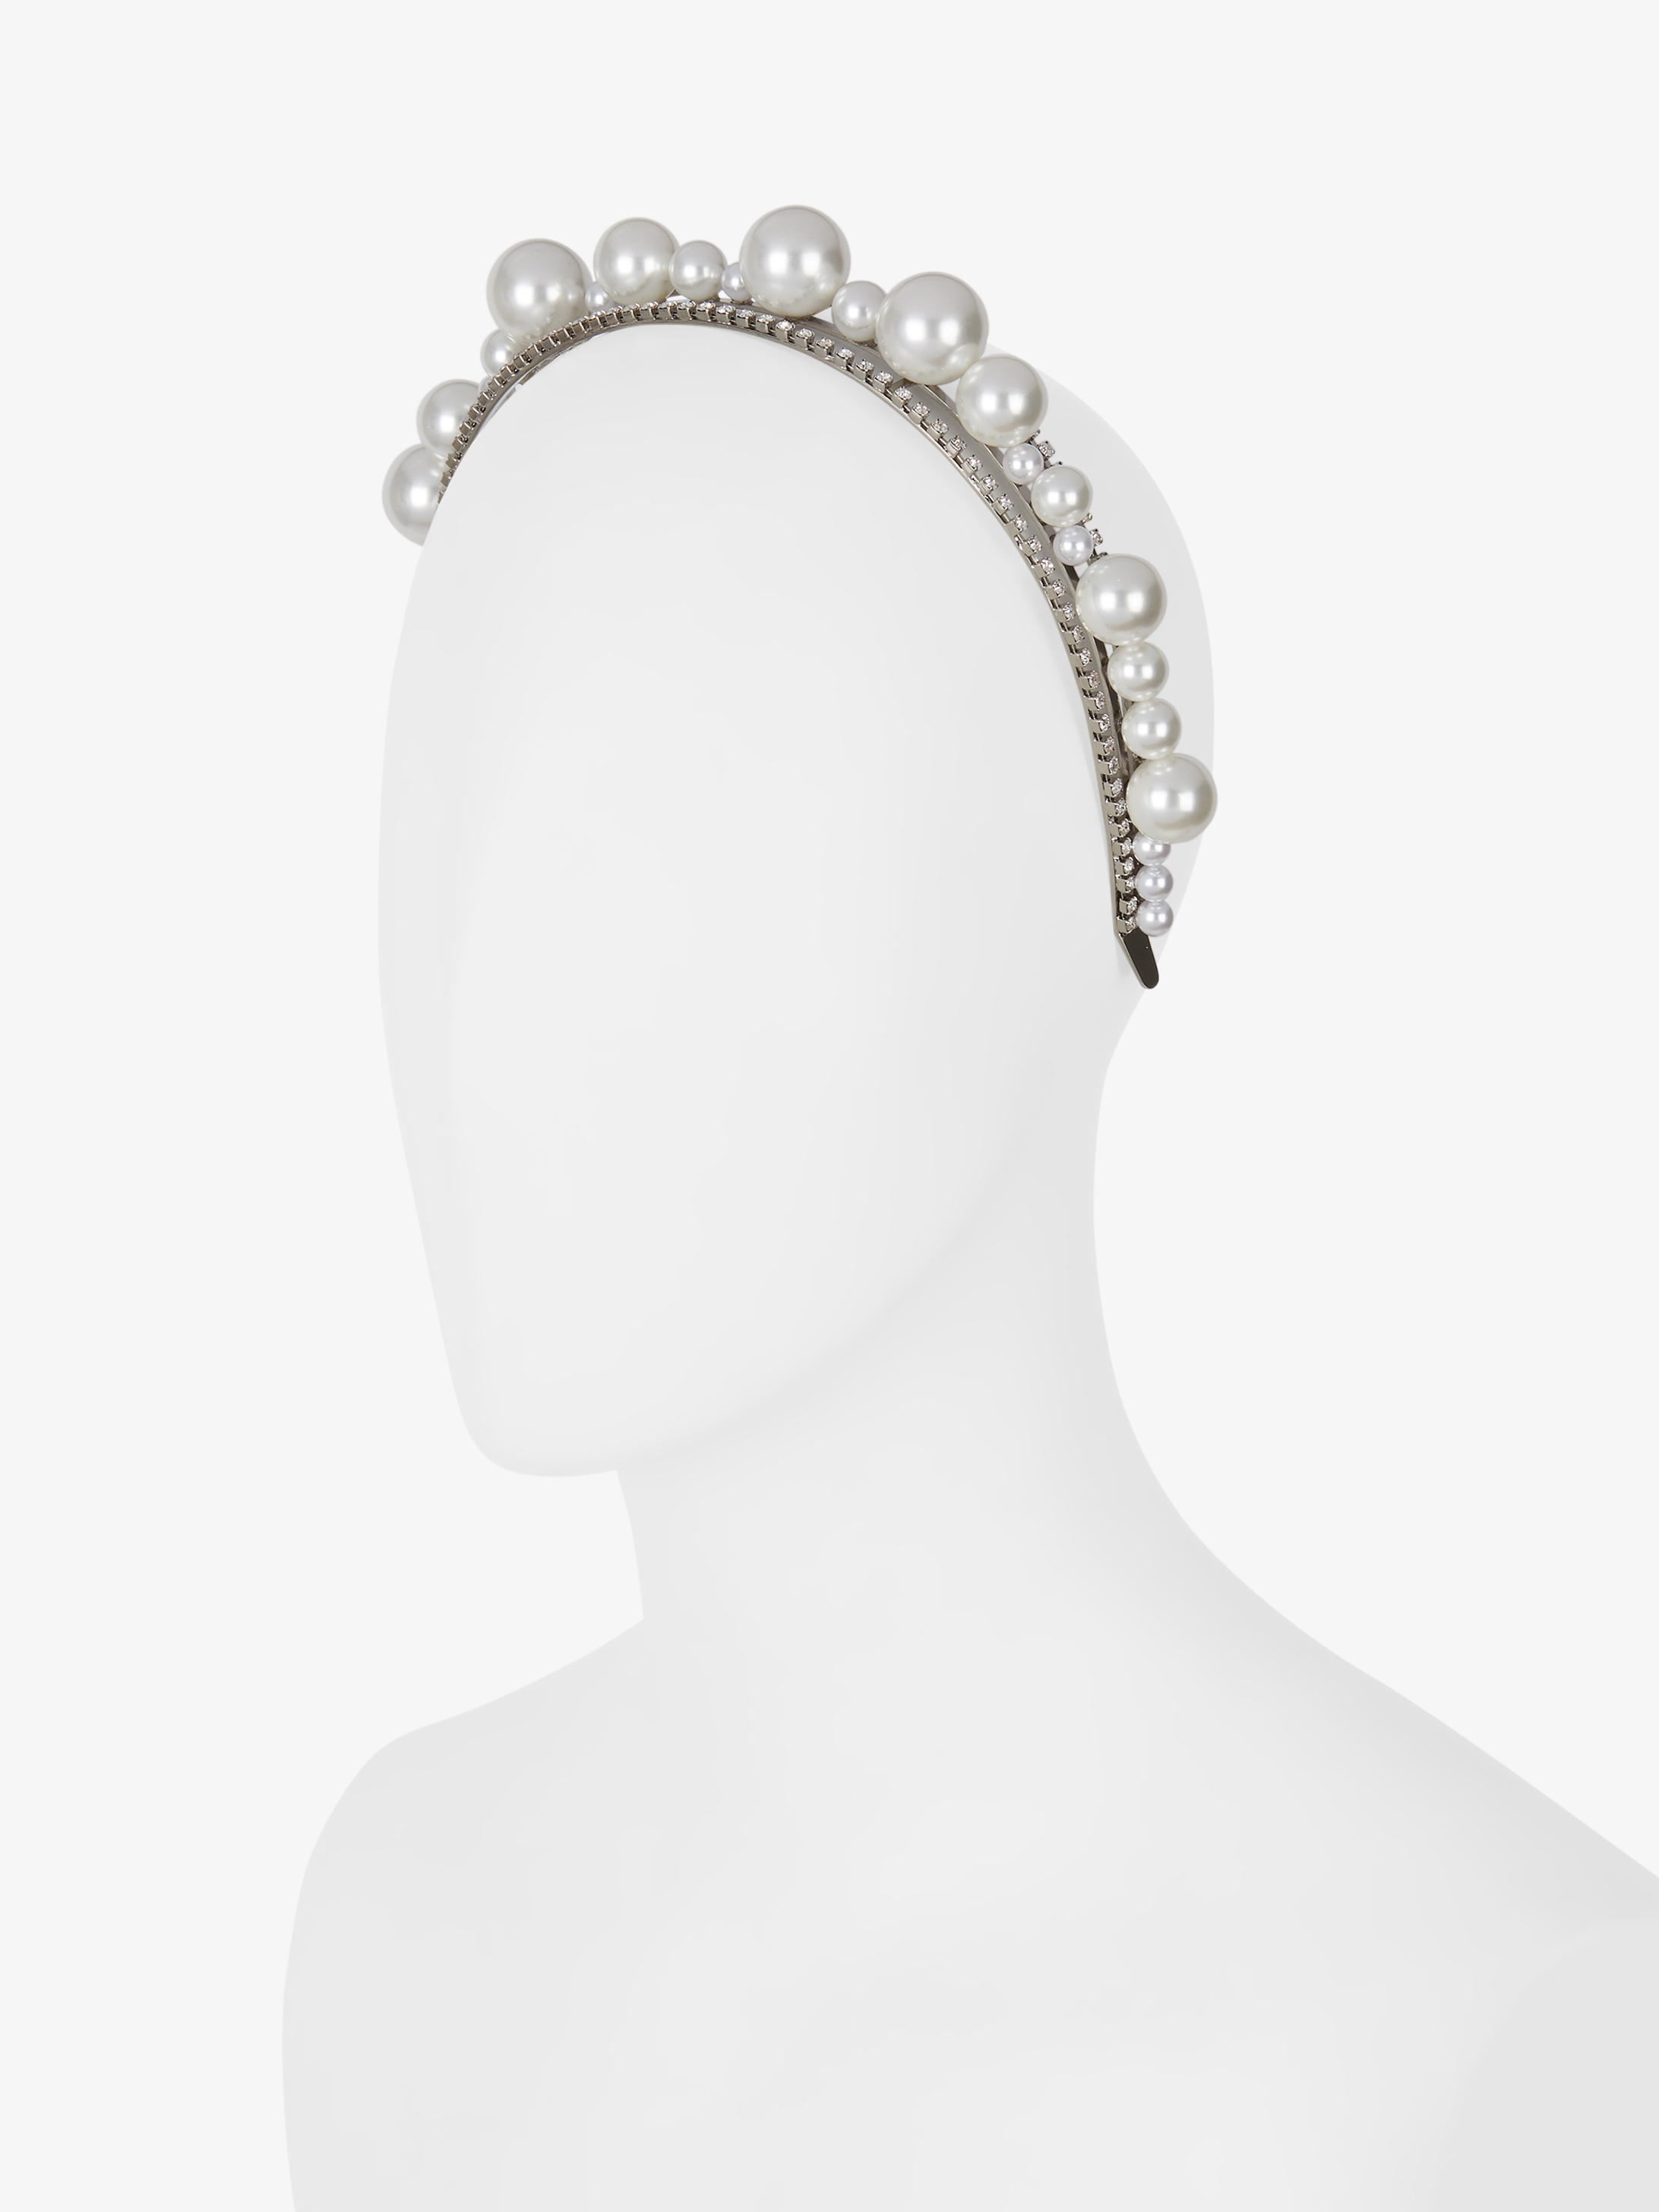 Ariana headband in pearls and crystals